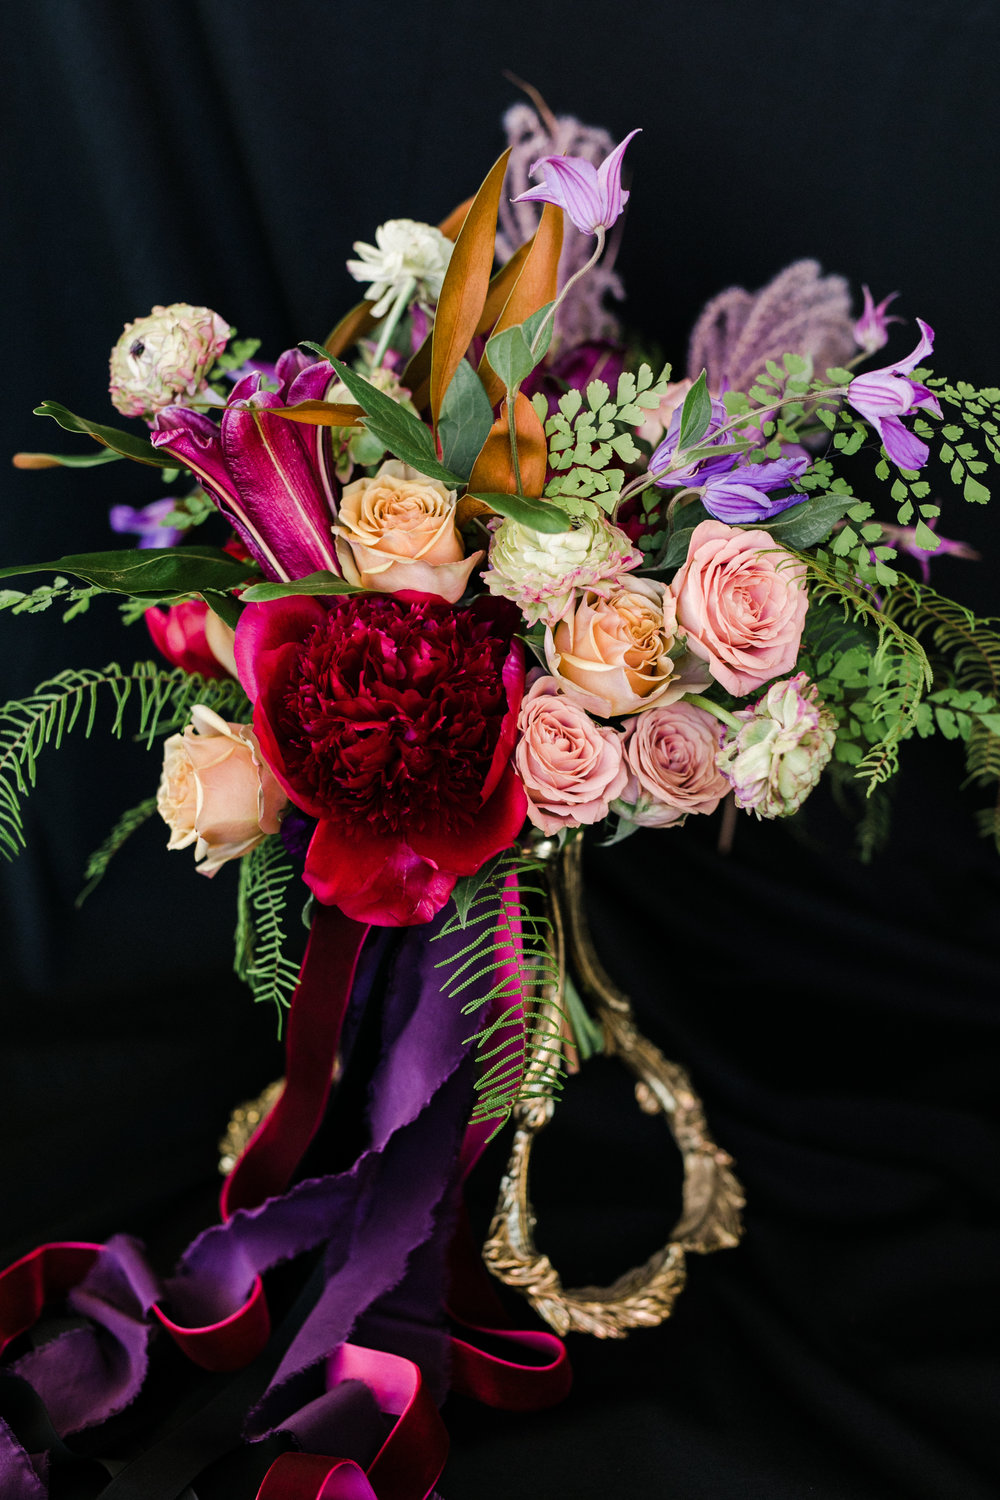 jewel-toned bridal bouquet